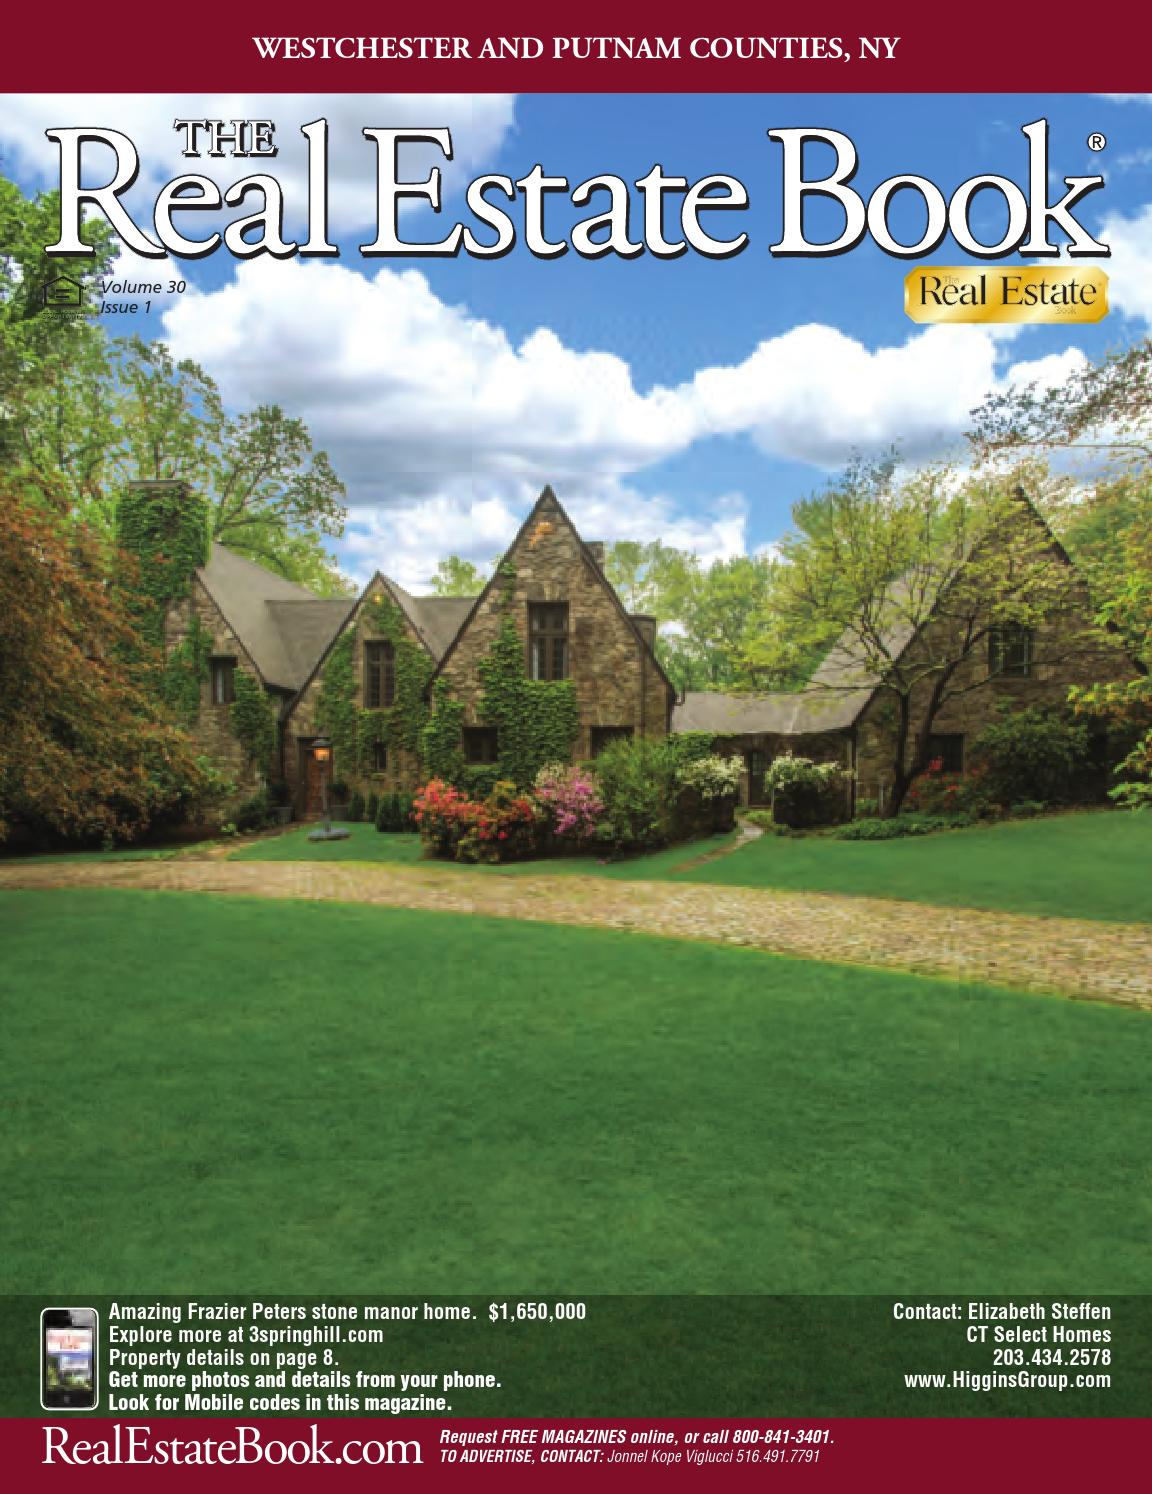 Elizabeth's Farmhouse Putnam Ct The Real Estate Book Of Westchester 30 1 By Treb